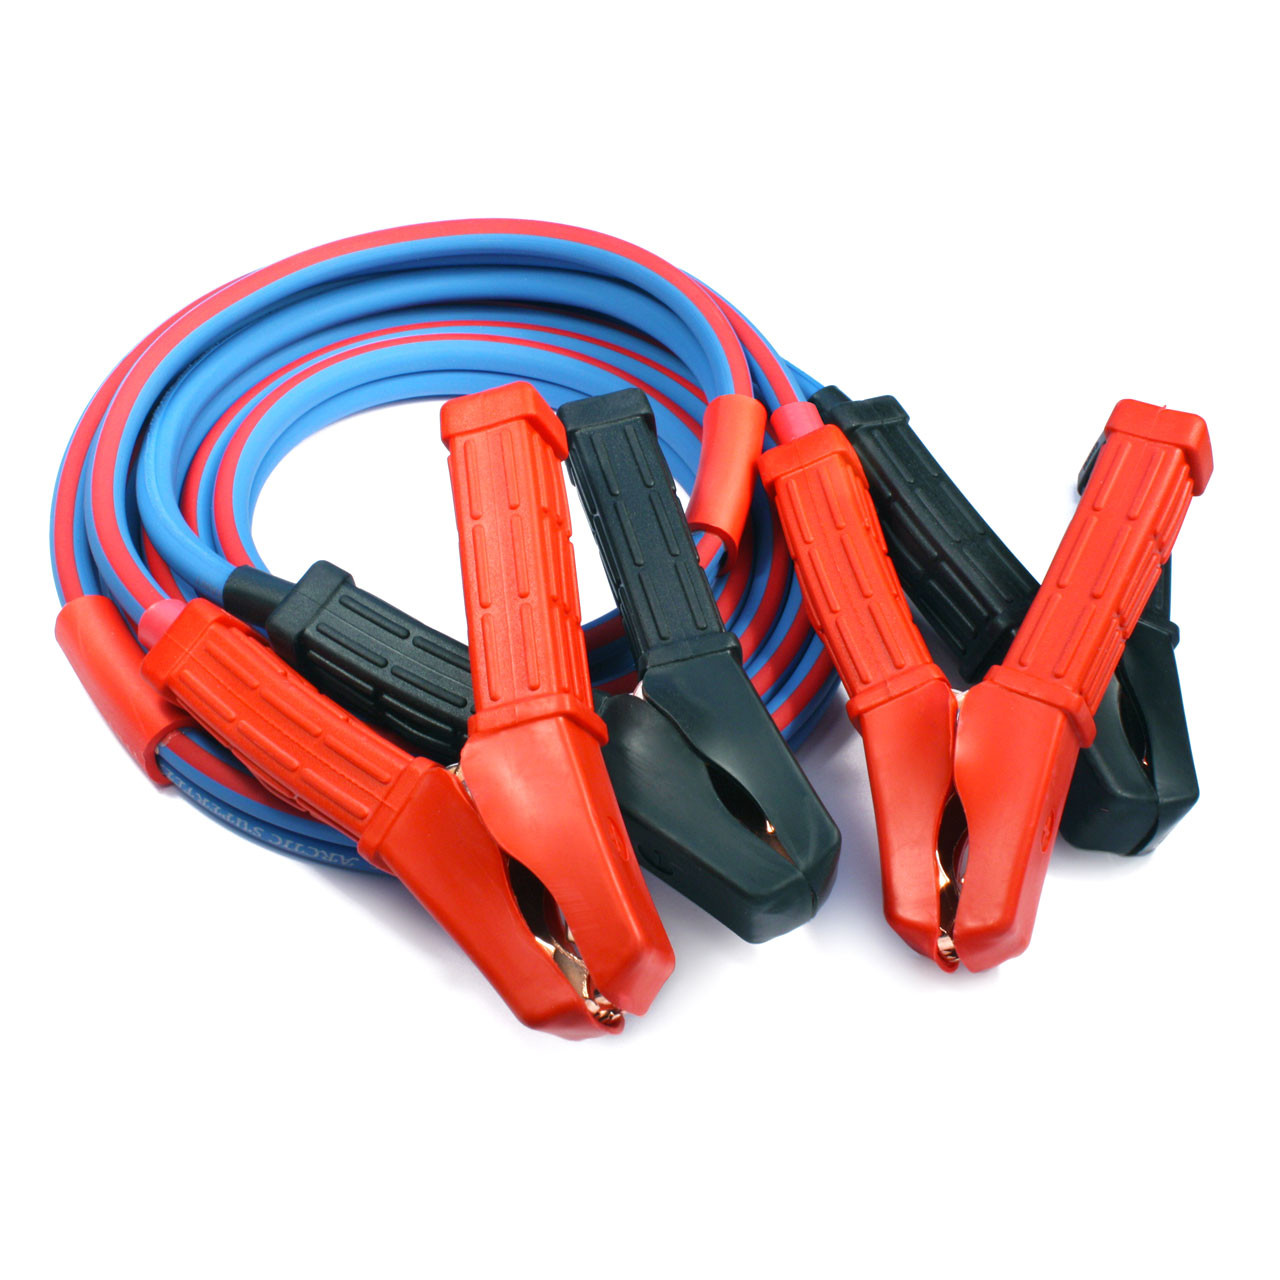 Polar Wire's ATV UTV Jumper Cables are made with Arctic Superflex Blue wire and top quality components and processes